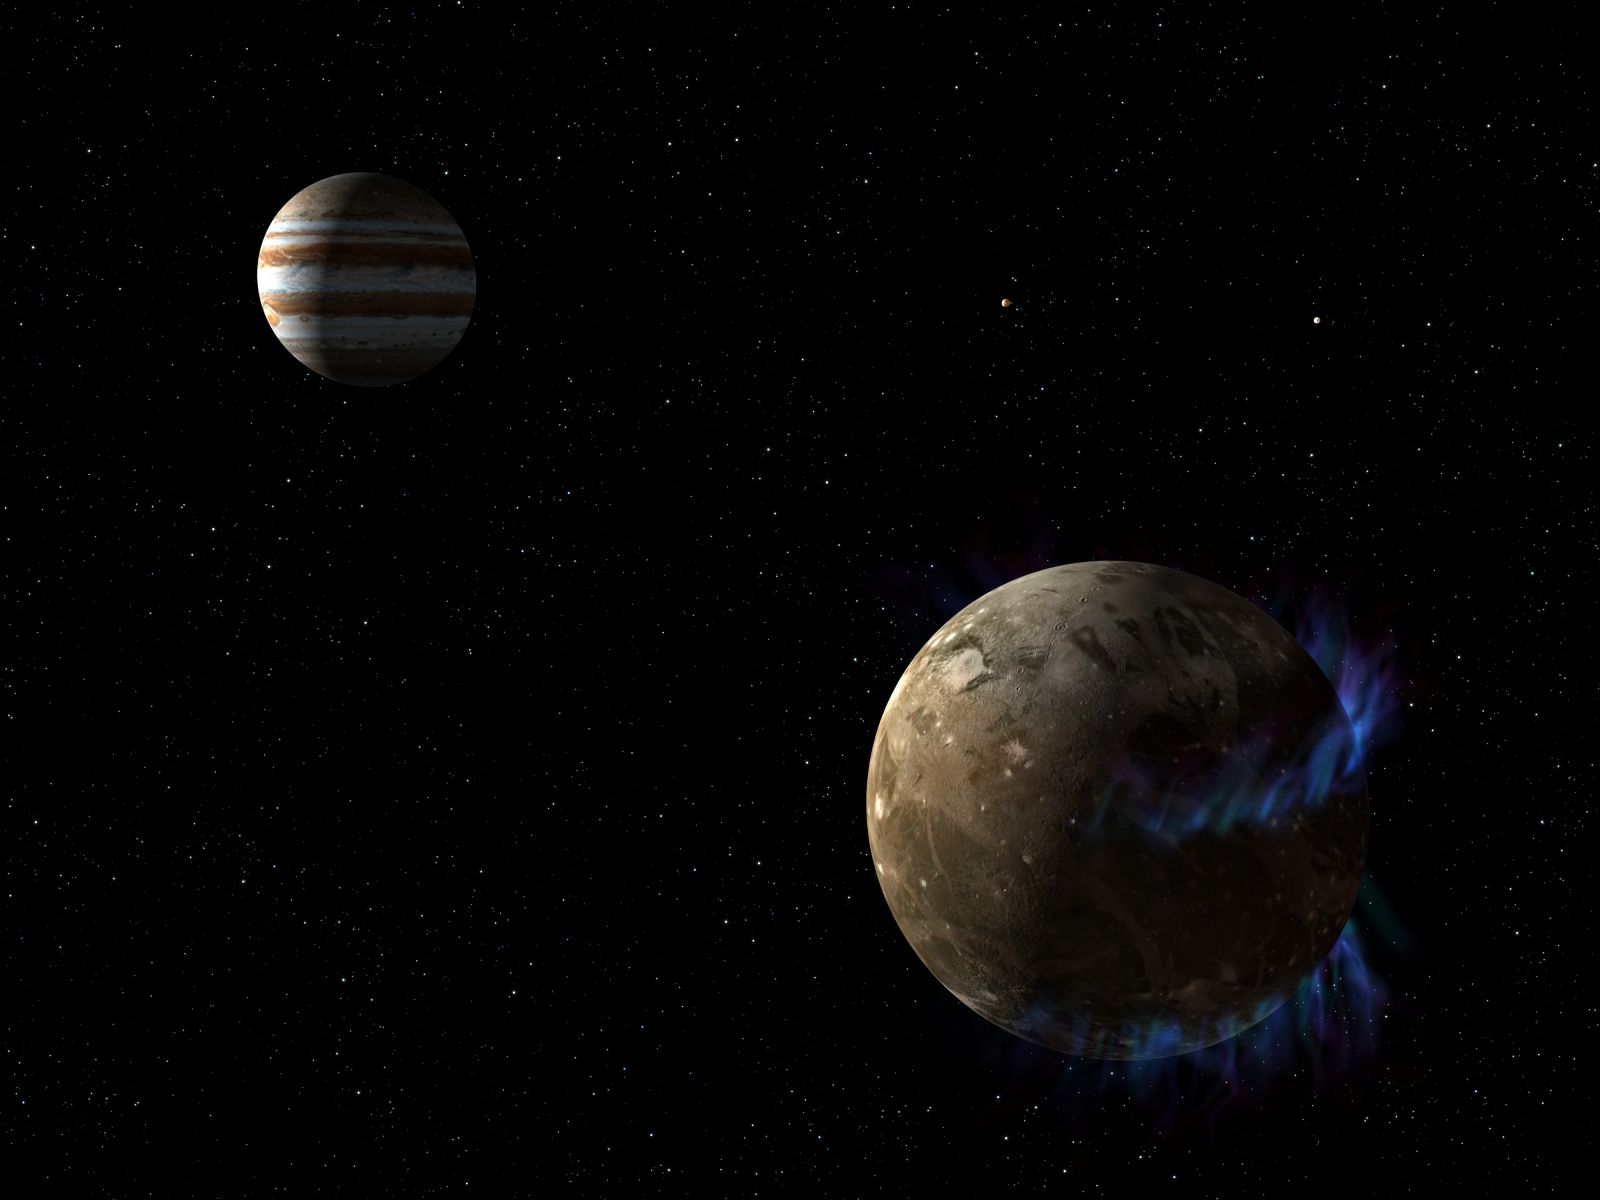 In this illustration, the moon Ganymede orbits the giant planet Jupiter. Ganymede is depicted with auroras, which were observed by NASA's Hubble Space Telescope. Image Credit: NASA/ESA